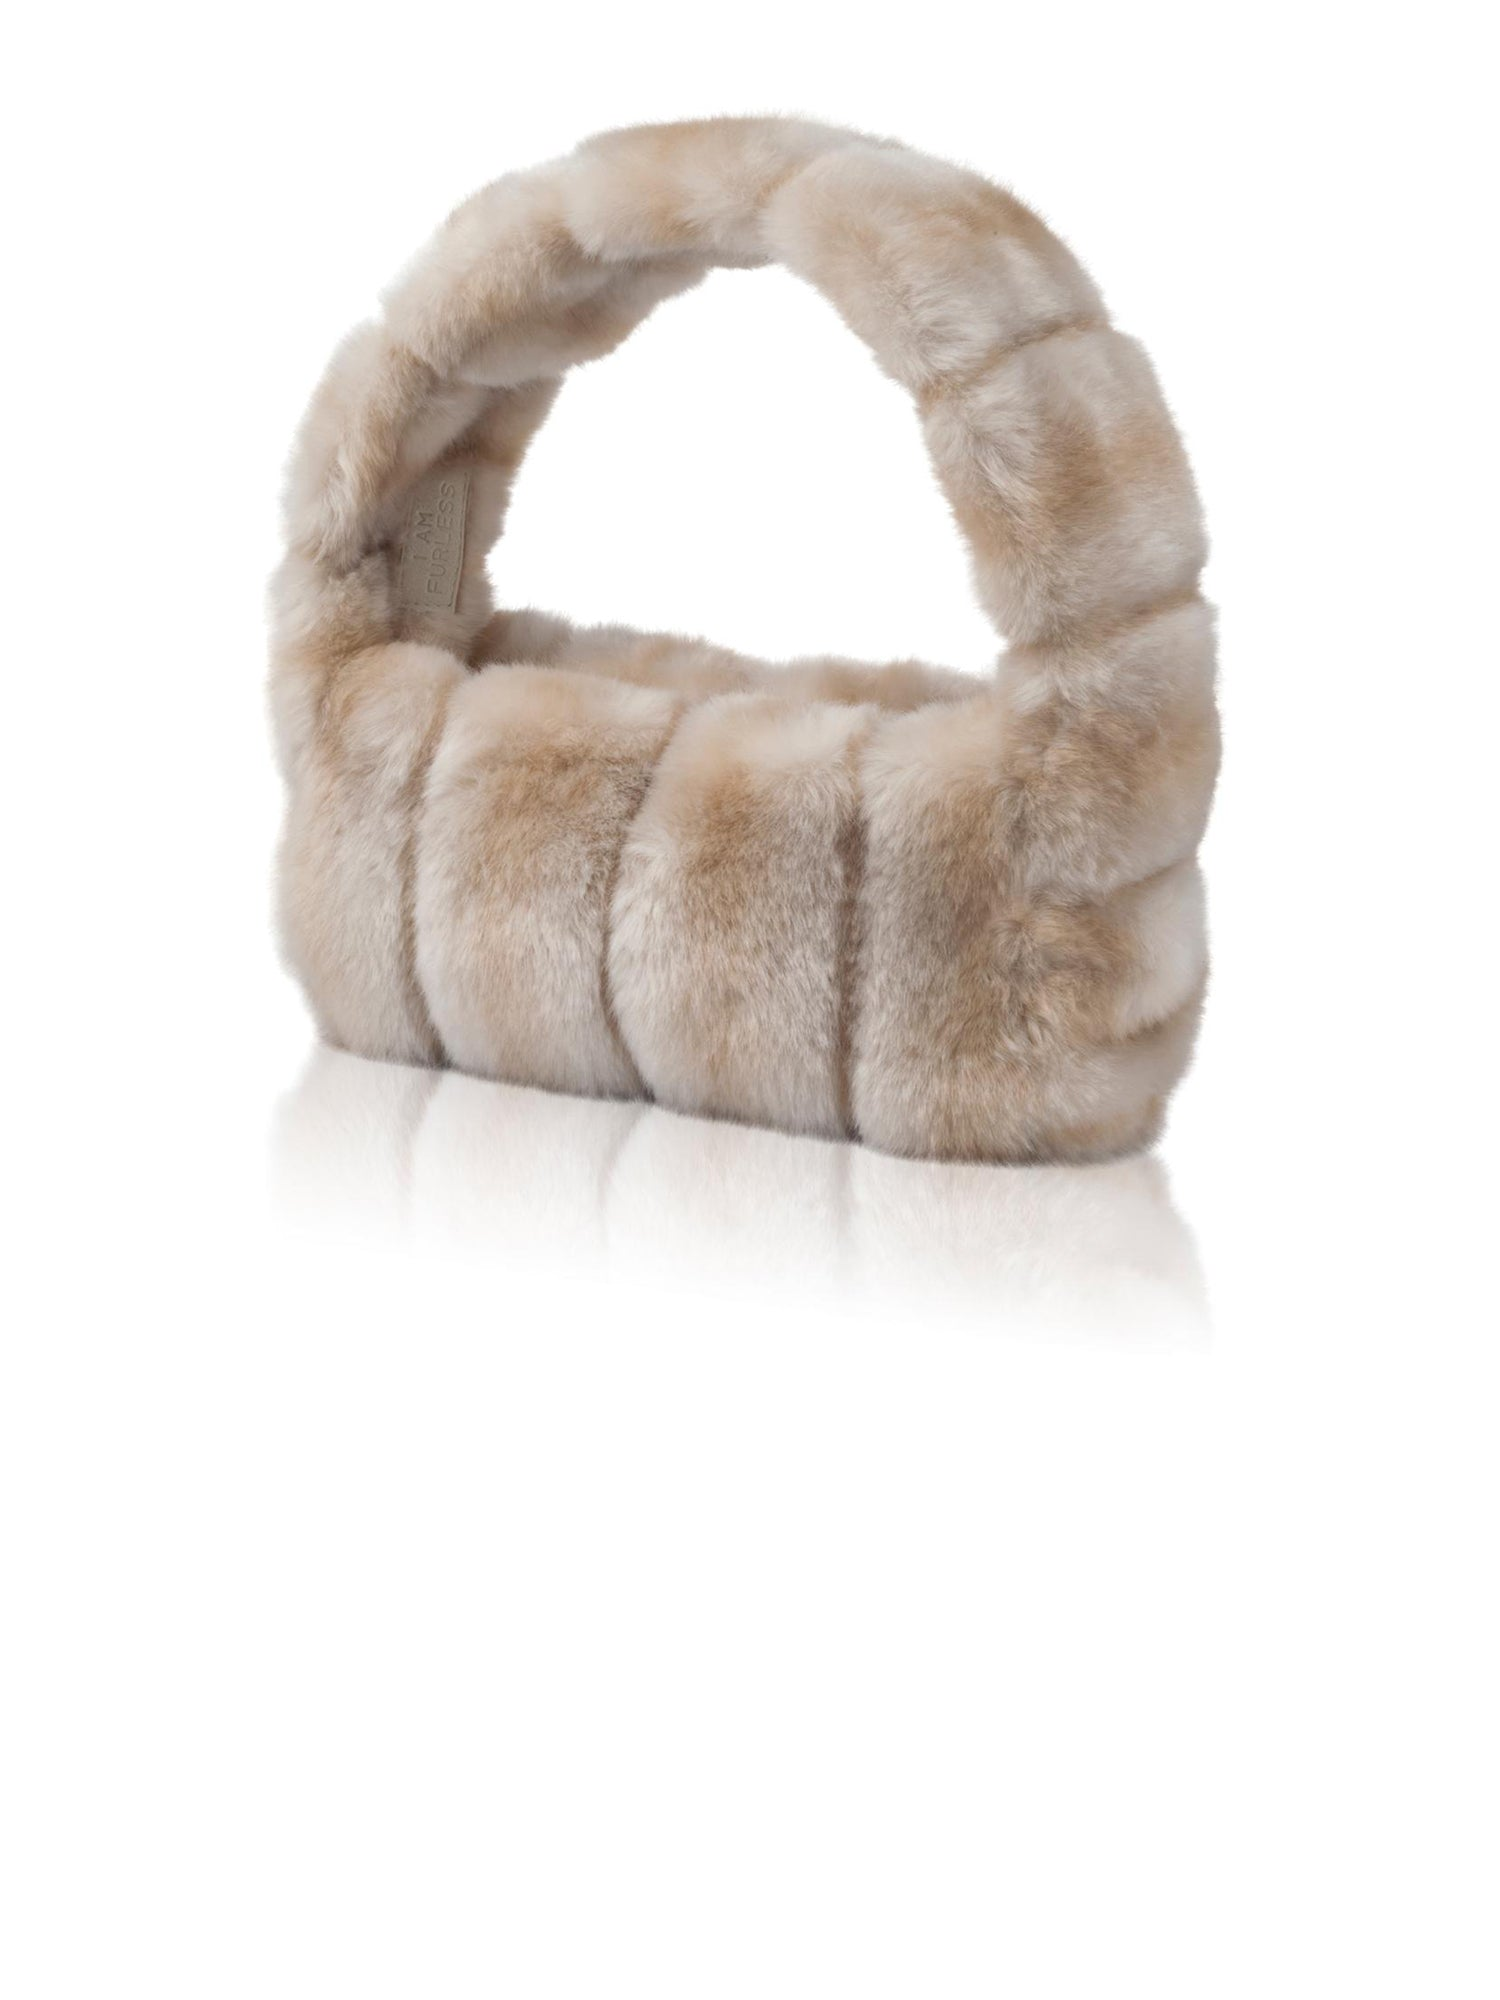 A Packshot Of Marei1998's Pampas Faux Fur Handbag In A Most Elegant Neutral\Beige Color. Featuring Narrow Silhouette And Short Strap. A Chic Upgrade To Any Outfit. Front View.